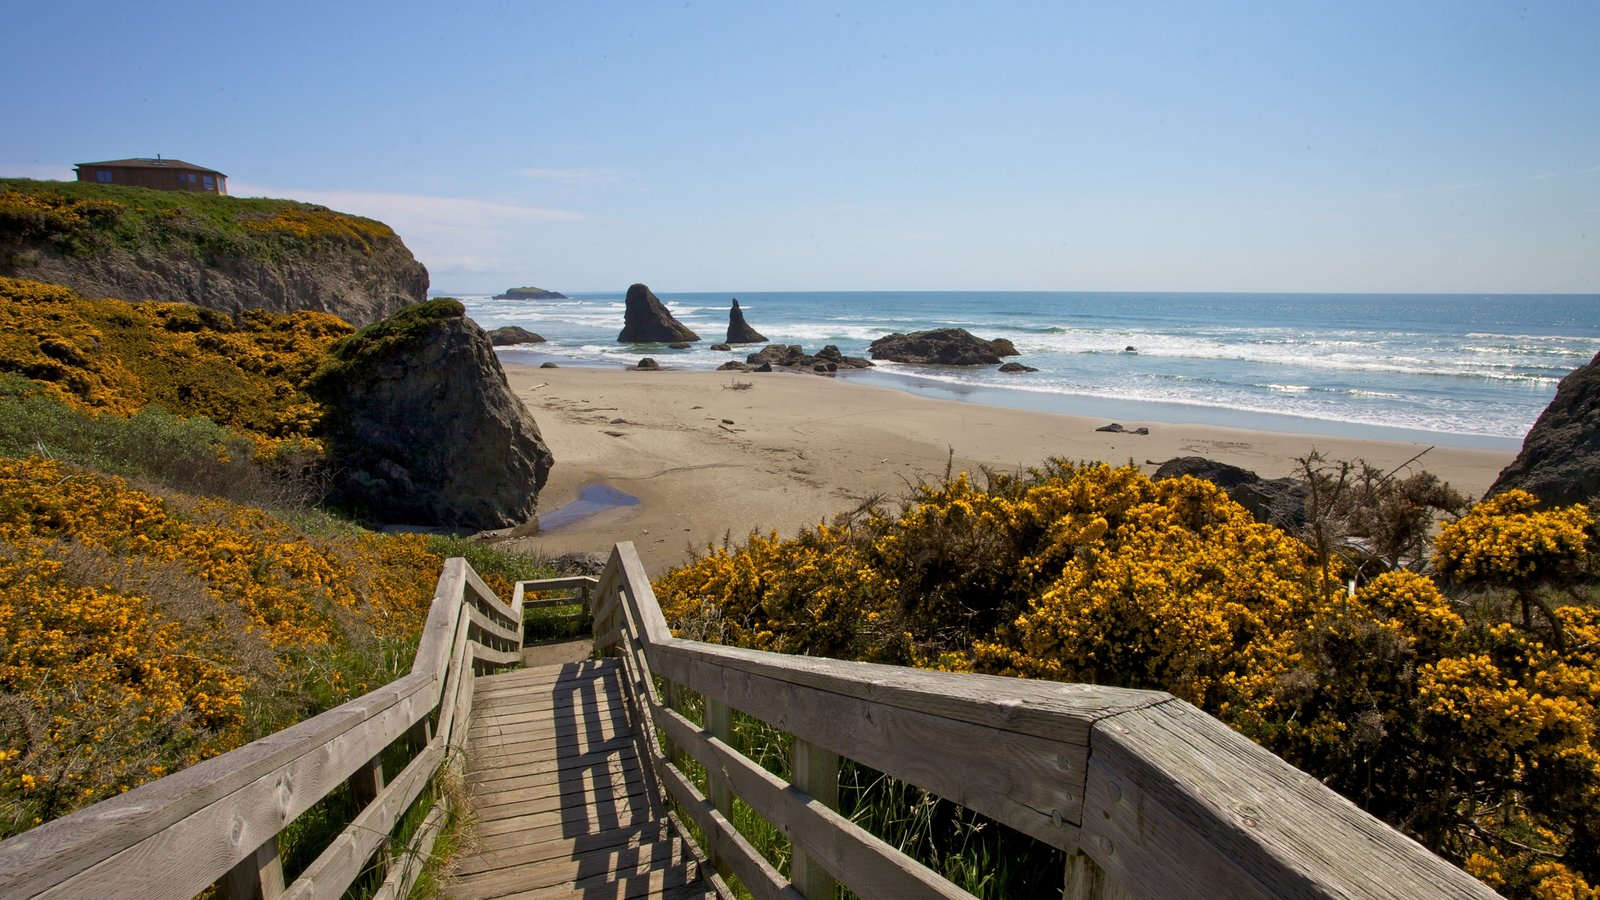 Bandon which includes a beach and landscape views